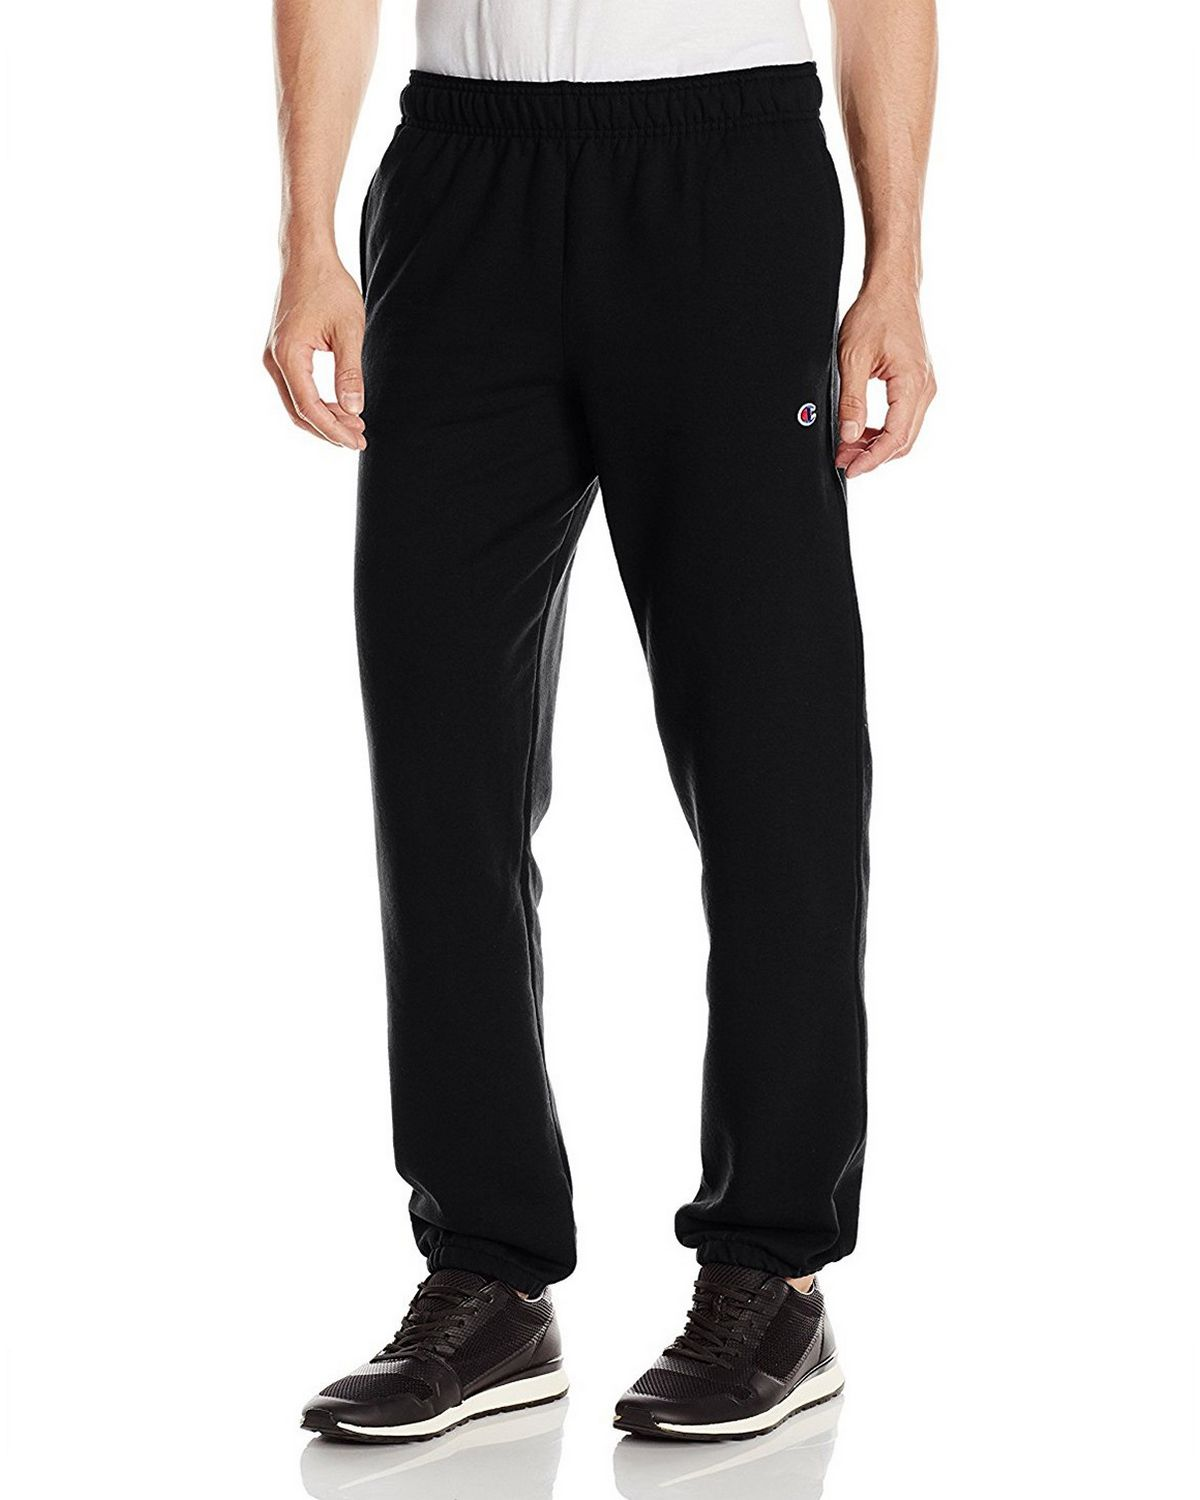 Champion Young Men's Fleece Pants PartNumber: 043VA91287812P MfgPartNumber: P0894